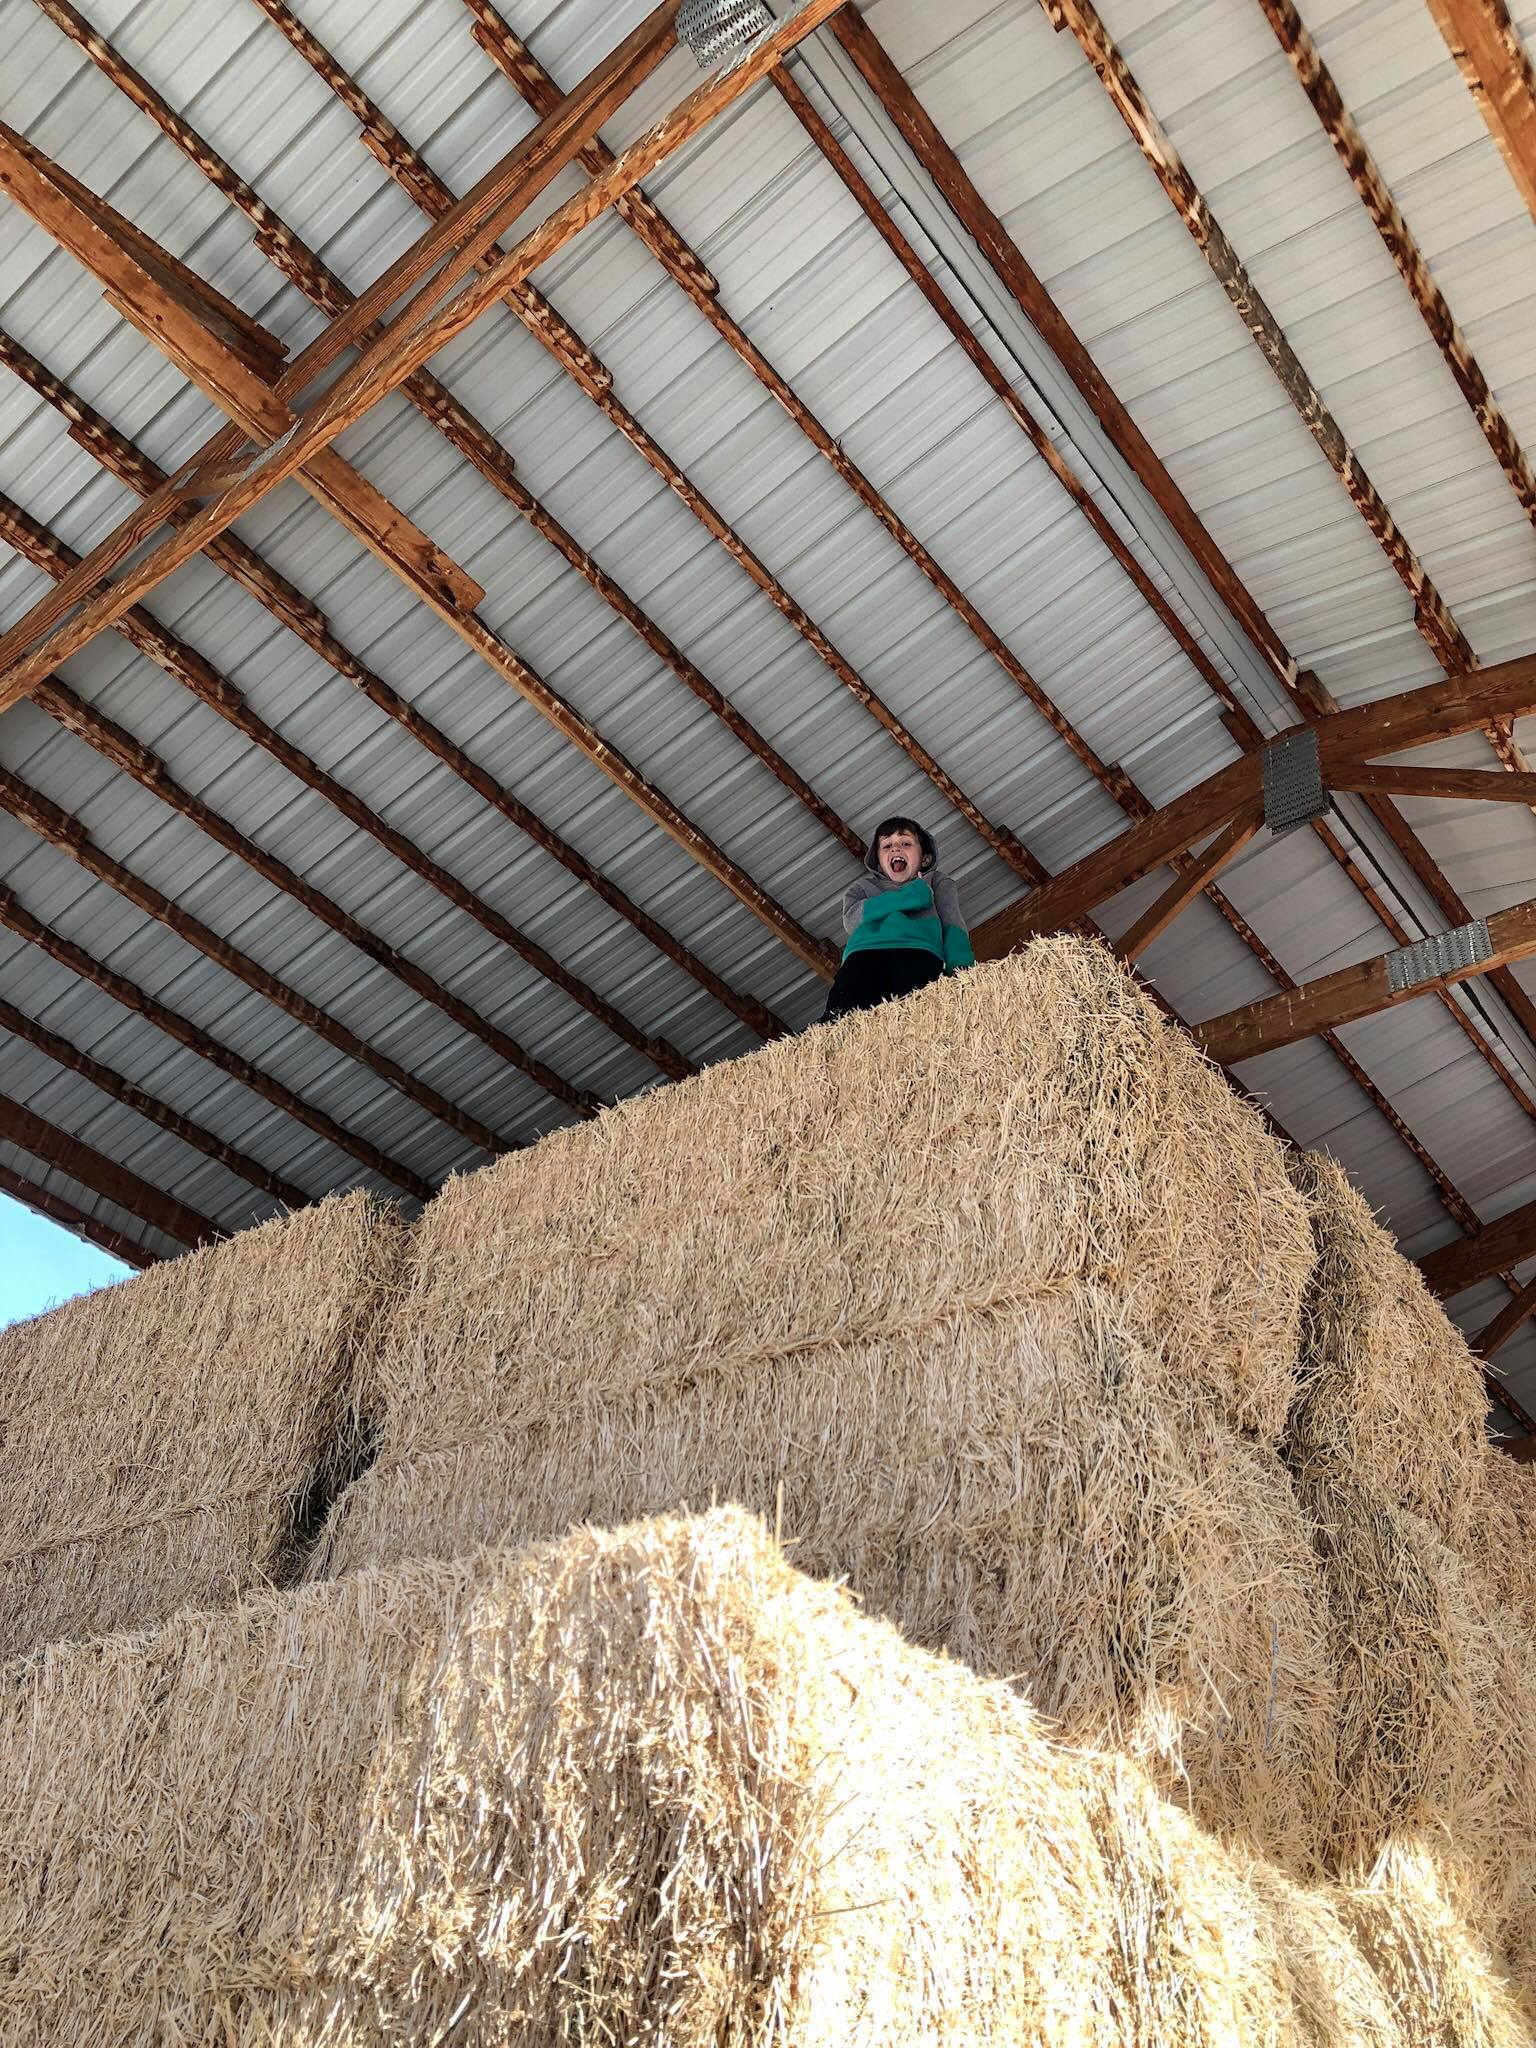 B, 9 years old, standing triumphantly on top of a tall haystack